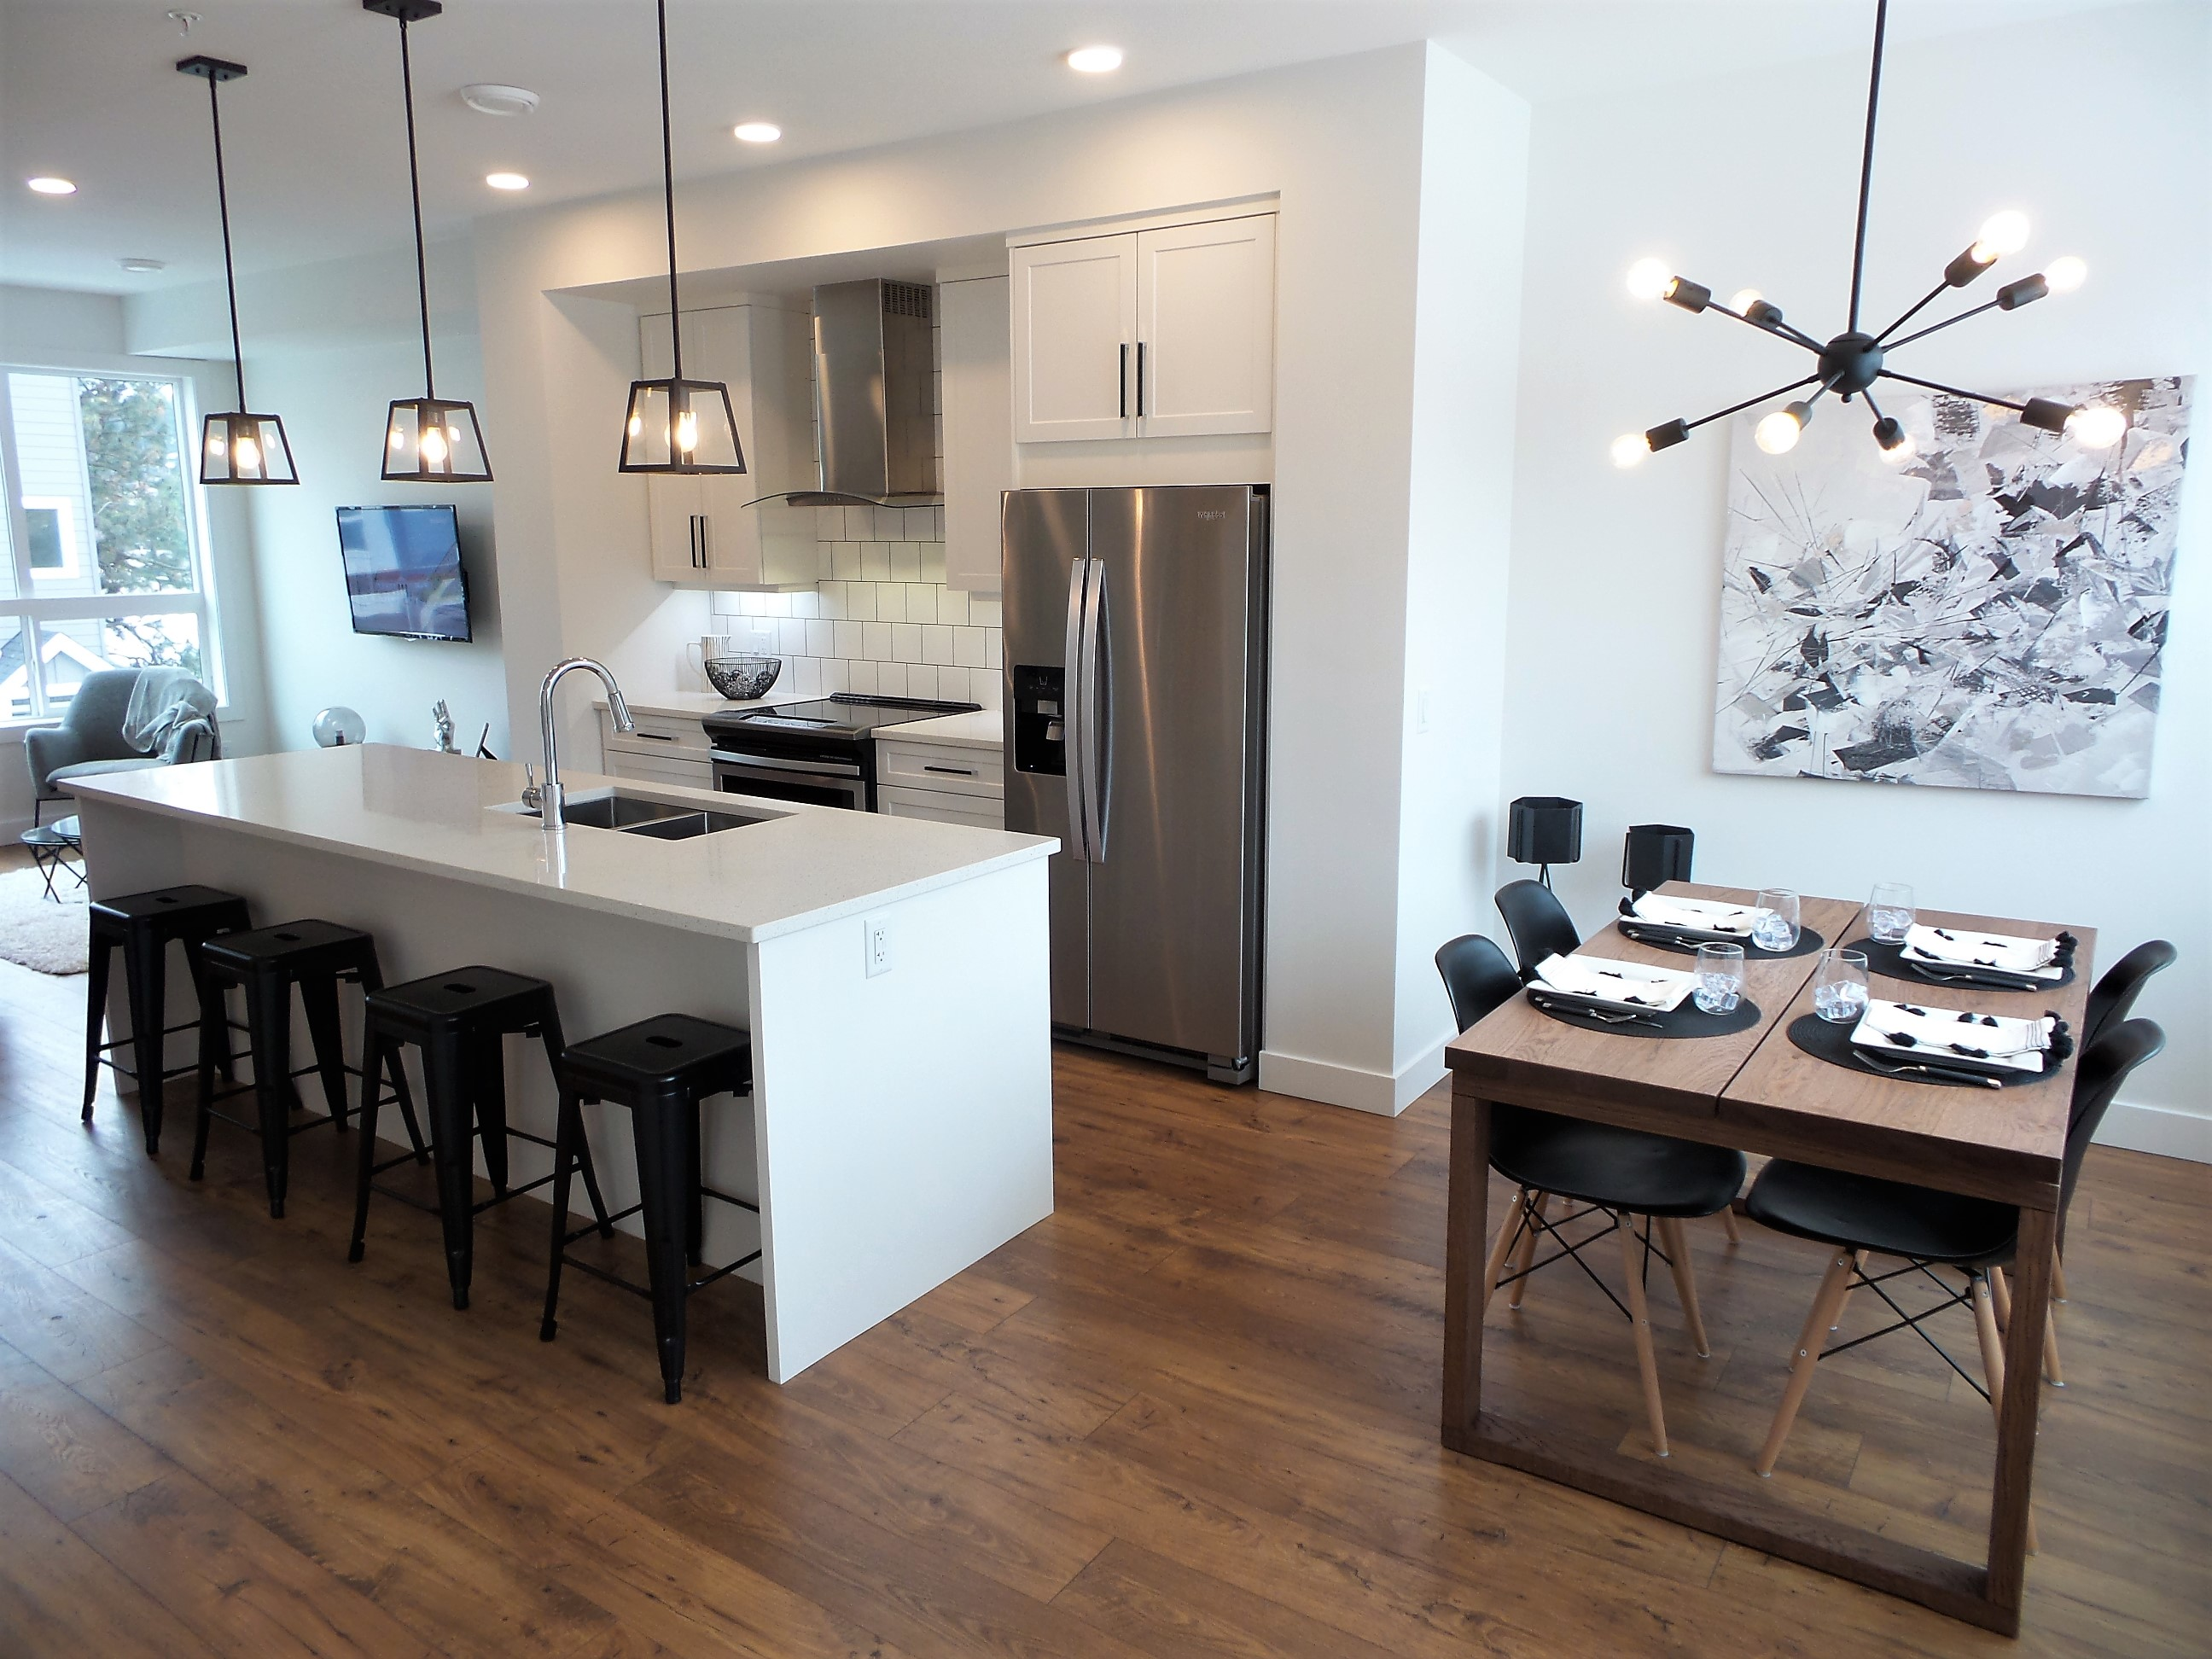 Beautifully designed 3 bedroom townhomes in Lake Country.